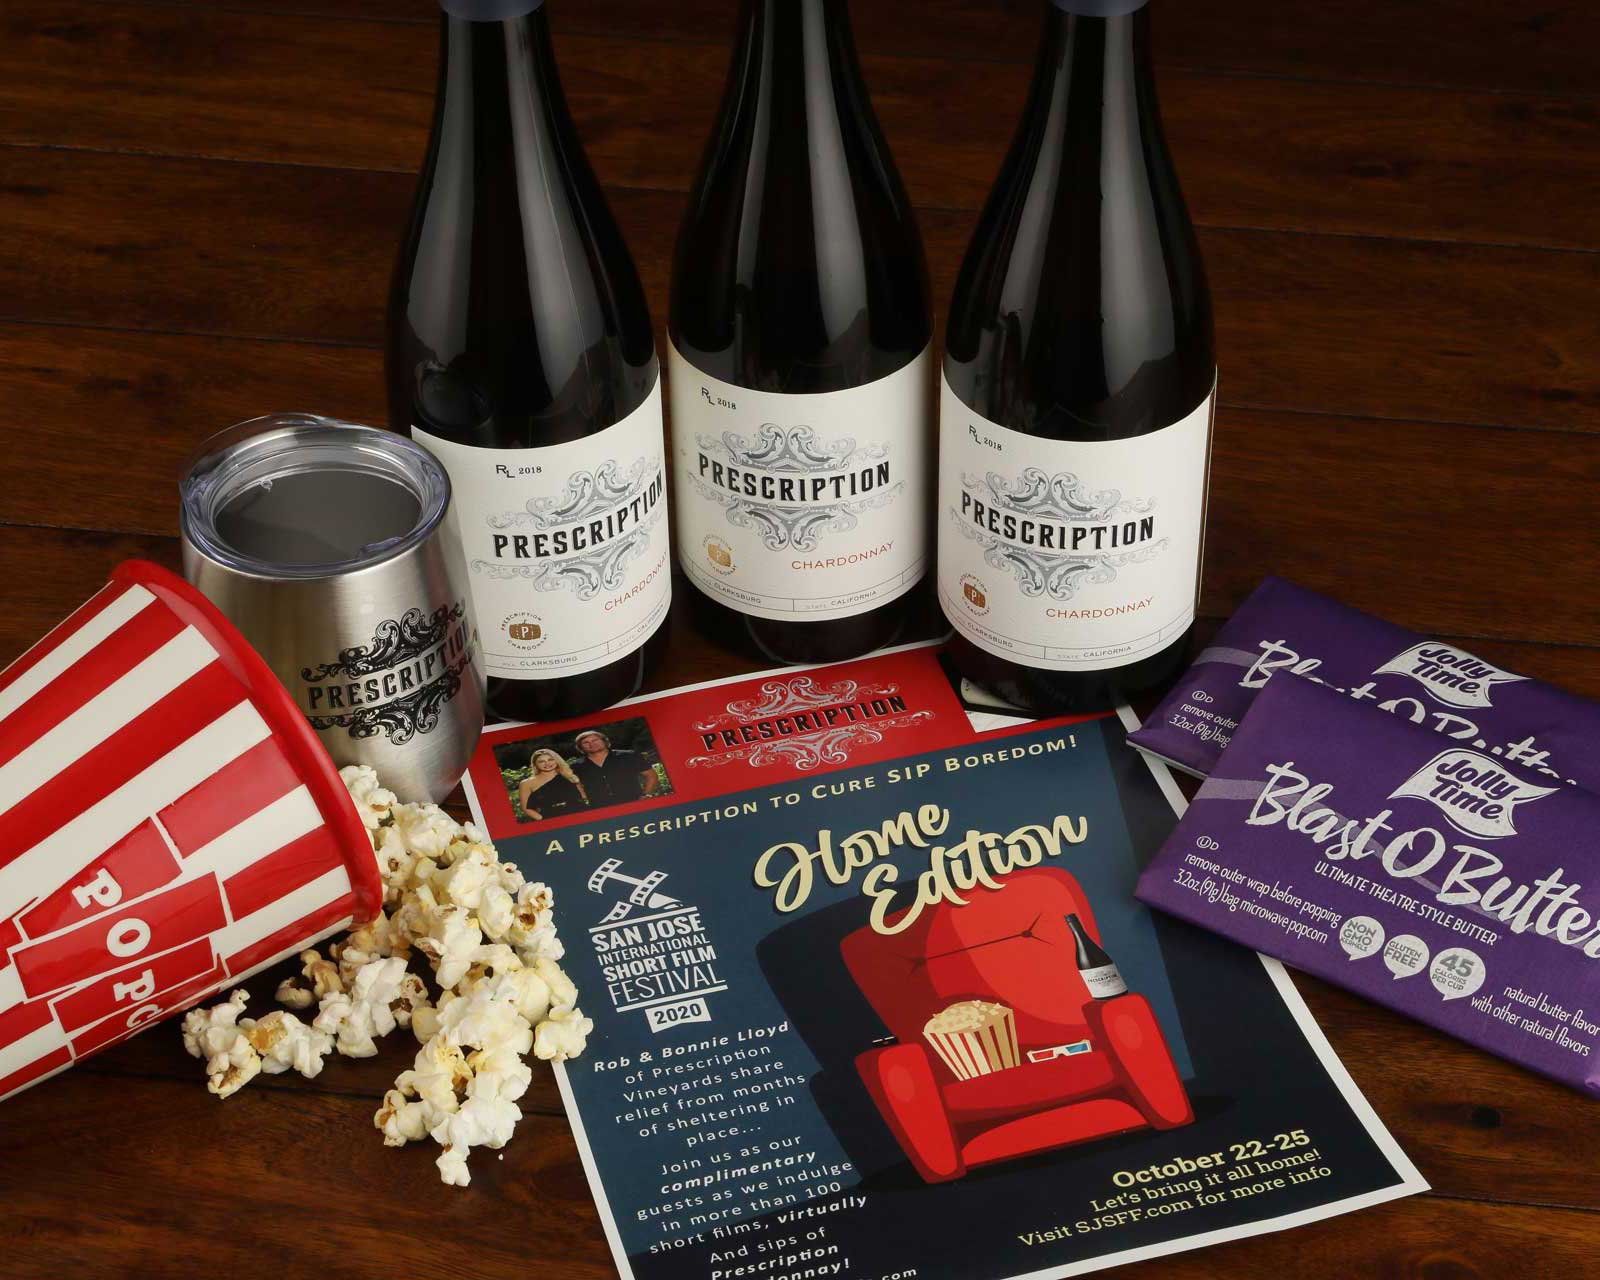 image of popcorn and wine bottles with movie flyer